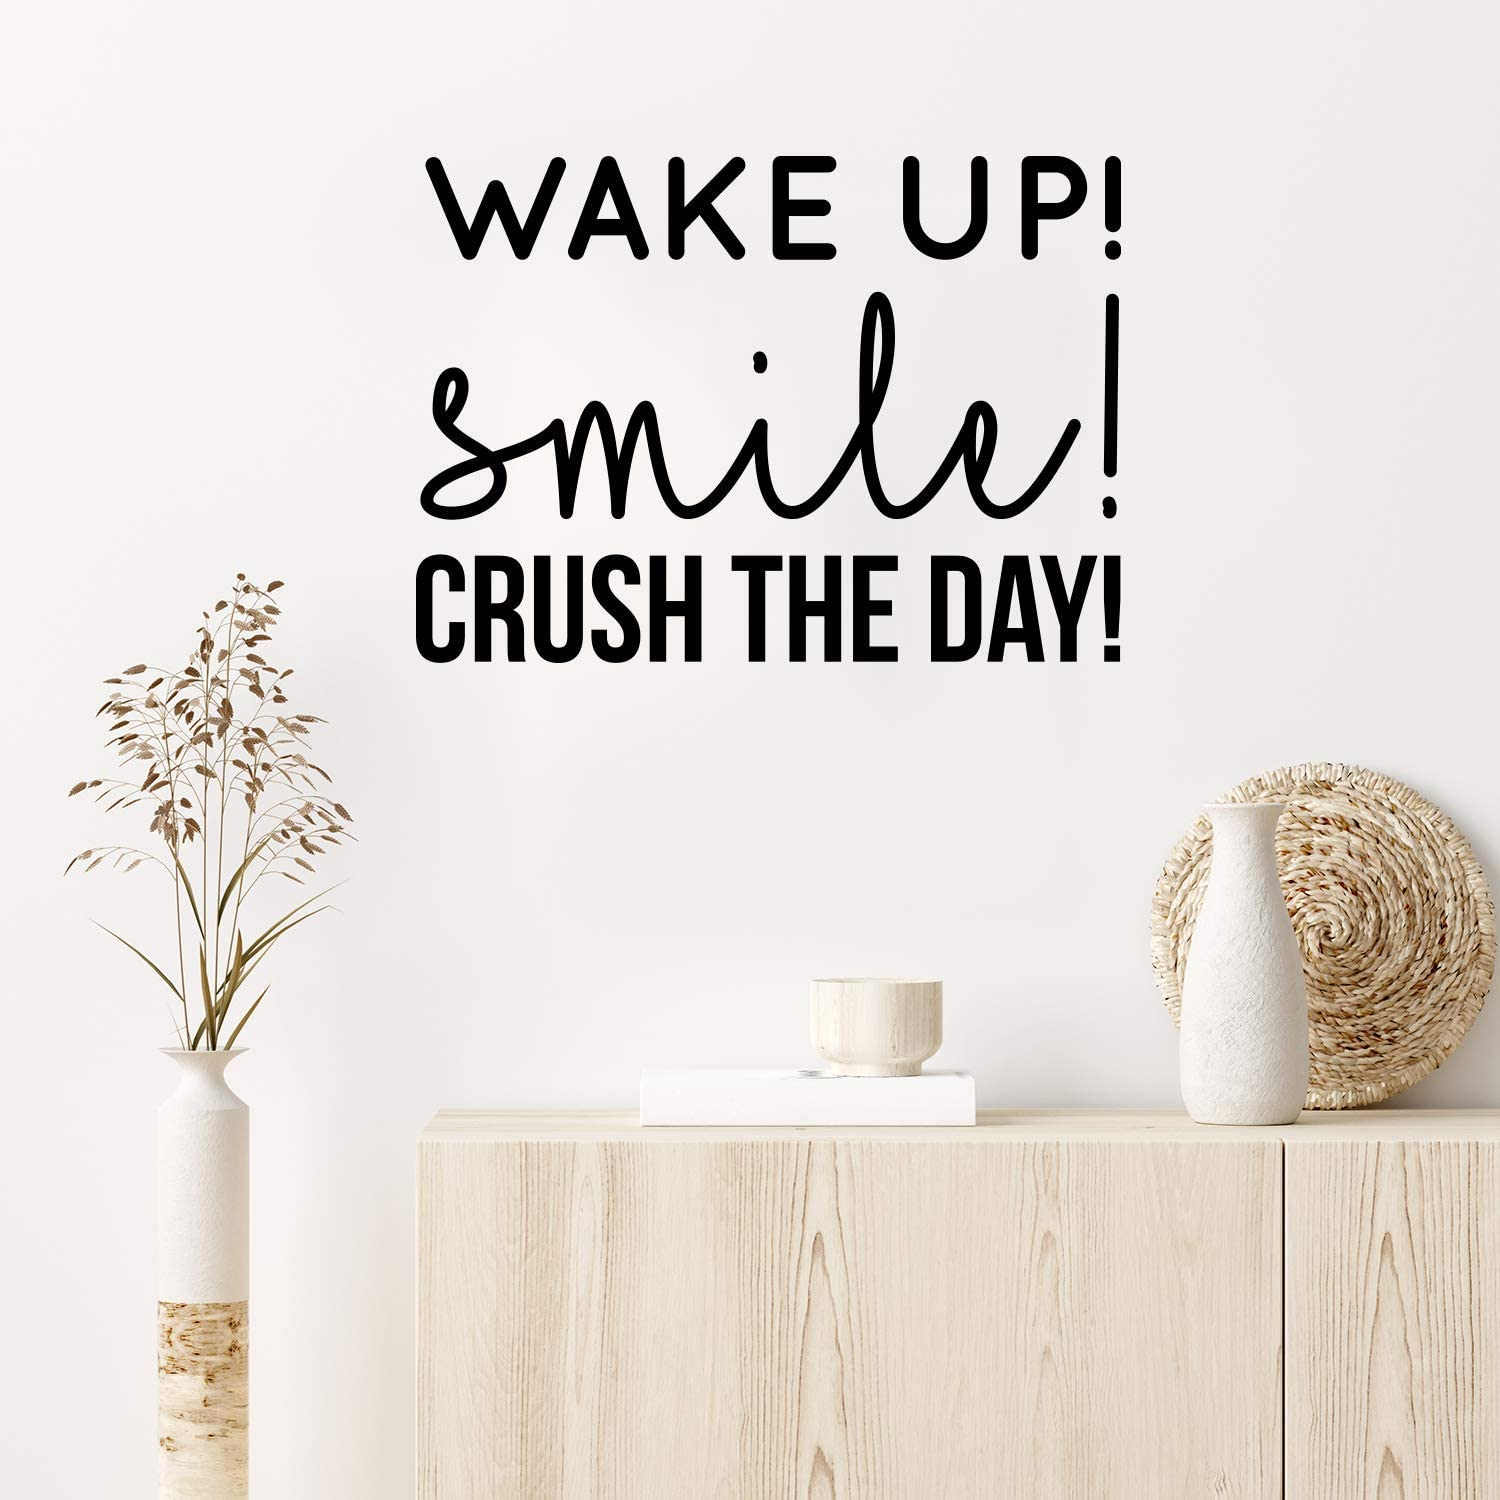 Vinyl Wall Art Decal Ranking TOP4 - Wake up x Overseas parallel import regular item Day The 22 Crush 16